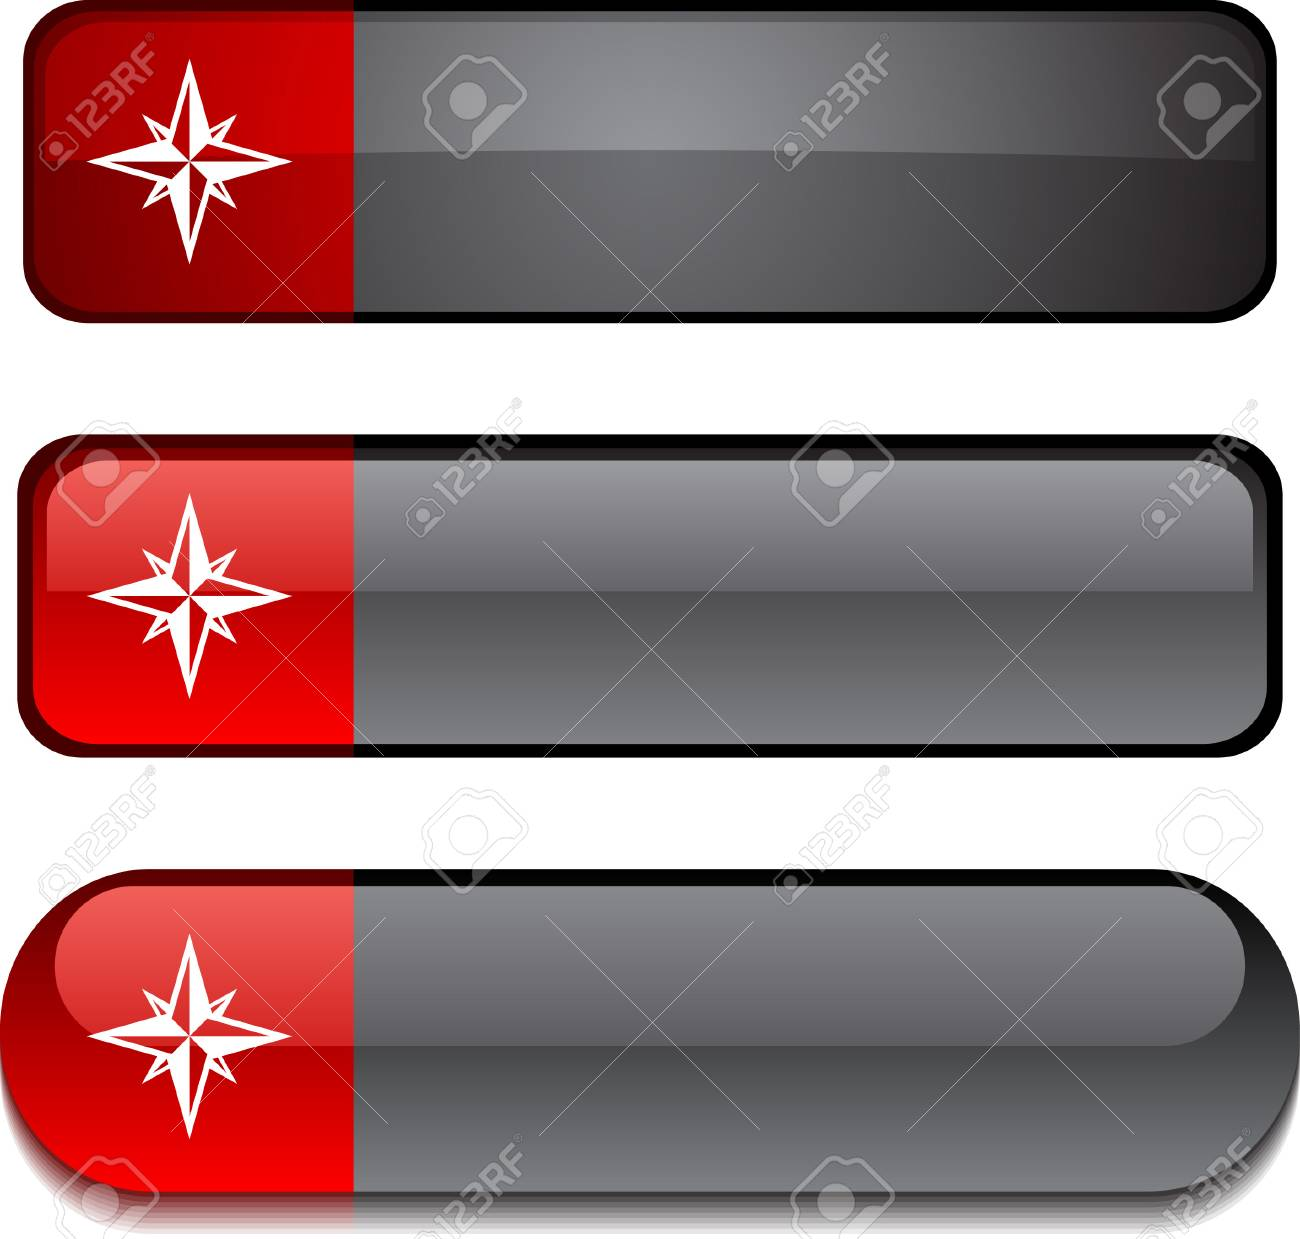 Compass   web buttons. Vector illustration. Stock Vector - 6302998